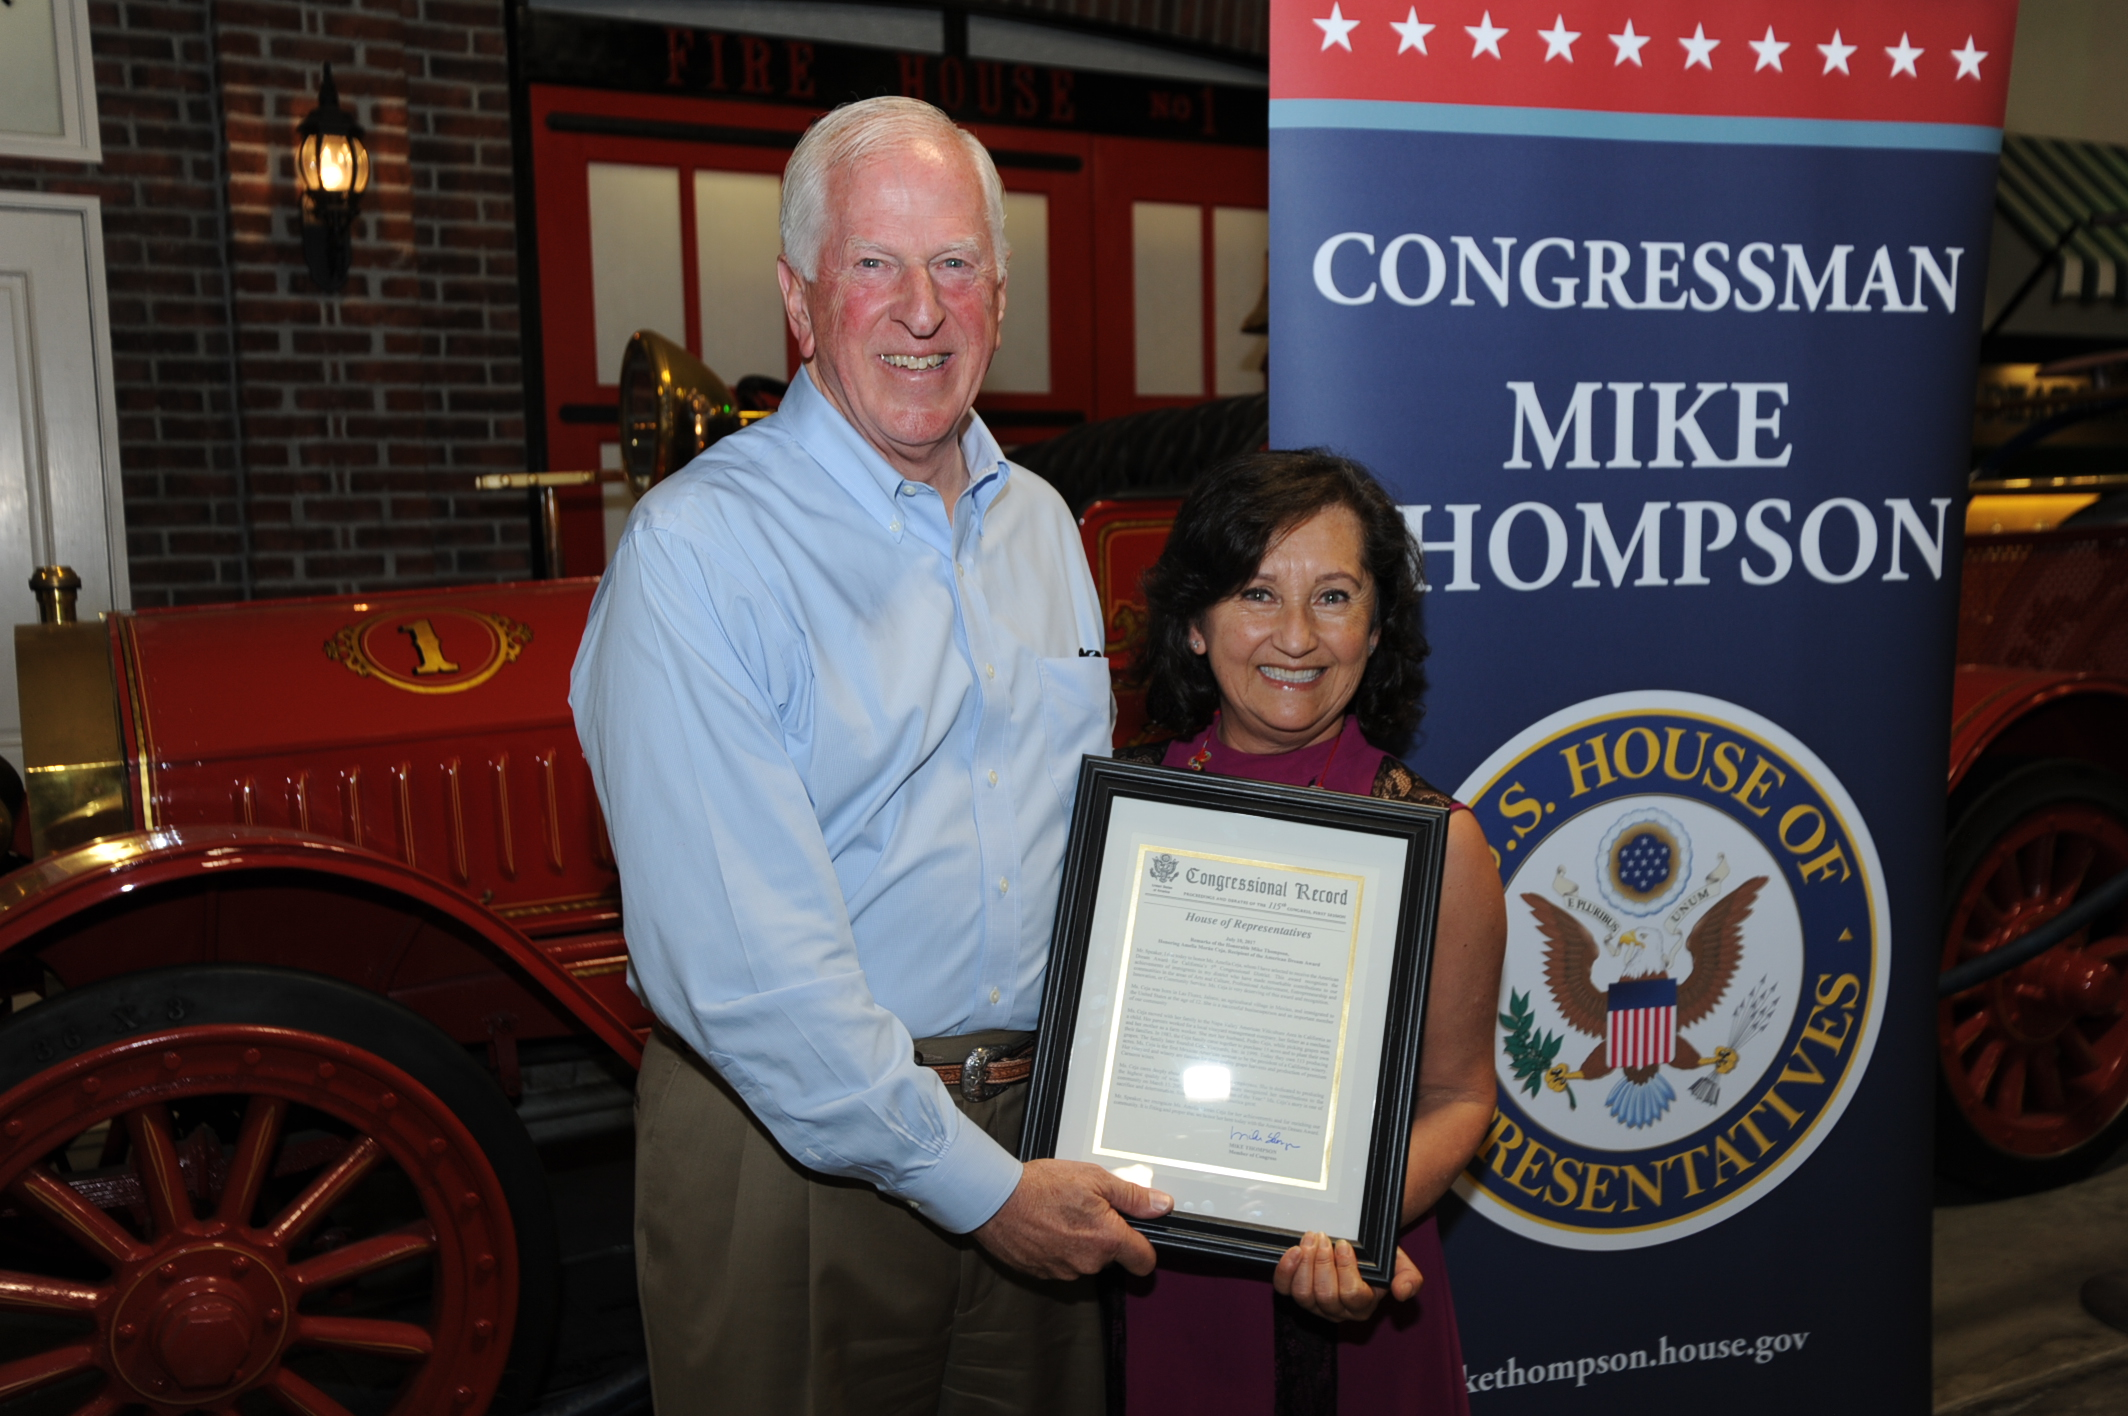 Rep. Thompson presents a My American Dream Award to Amelia Ceja.